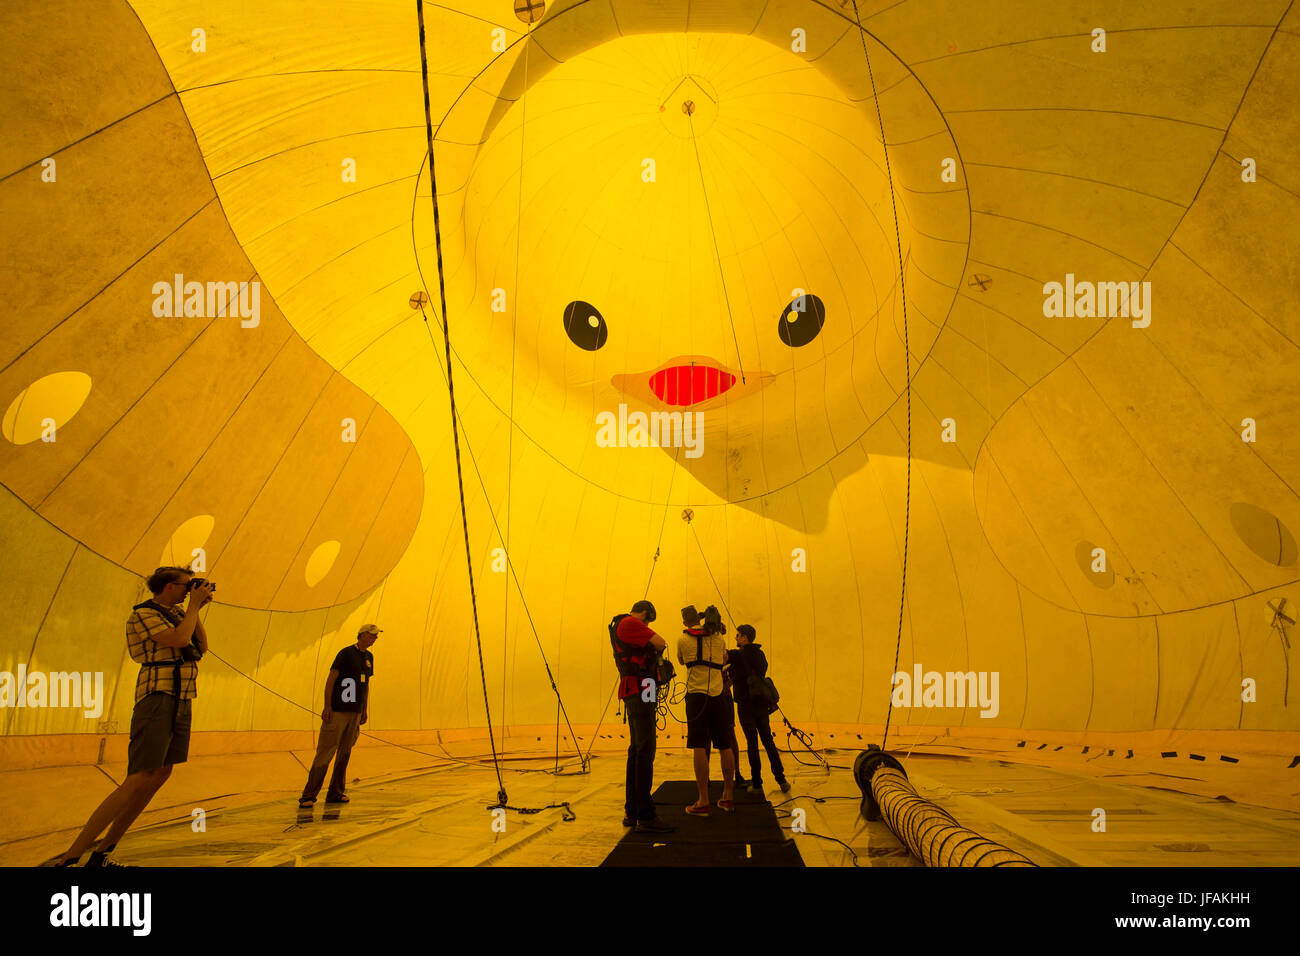 Journalists Report Inside A Giant Inflatable Rubber Duck In Toronto,  Canada, June 30, 2017. Credit: Zou Zheng/Xinhua/Alamy Live News